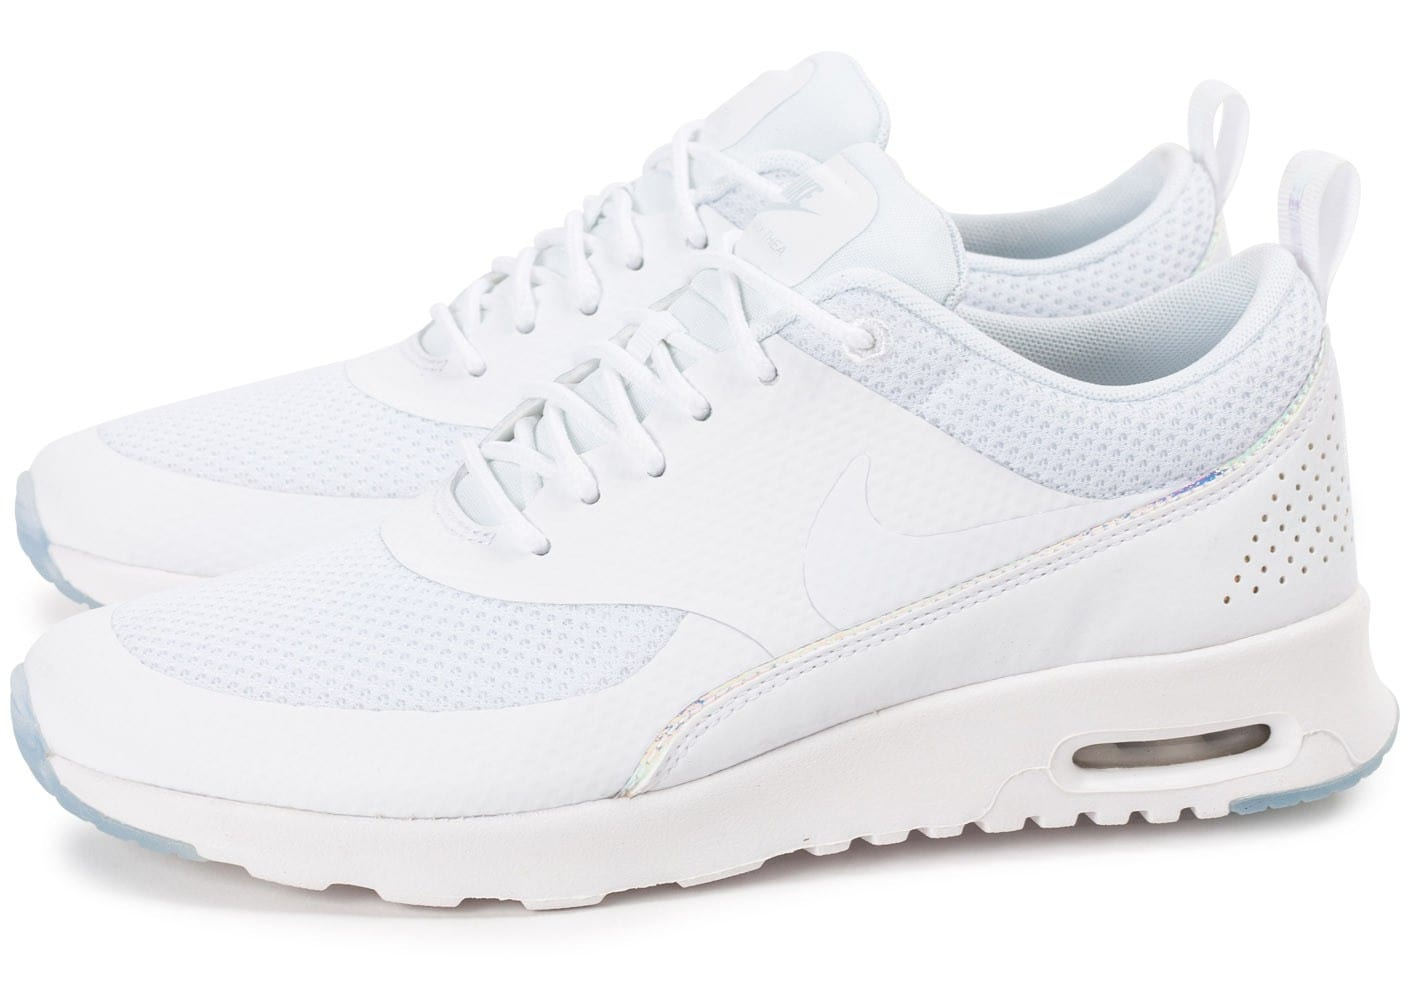 cheap for discount 97f49 8aa12 Cliquez pour zoomer Chaussures Nike Air Max Thea PRM blanche iridescente  vue extérieure ...